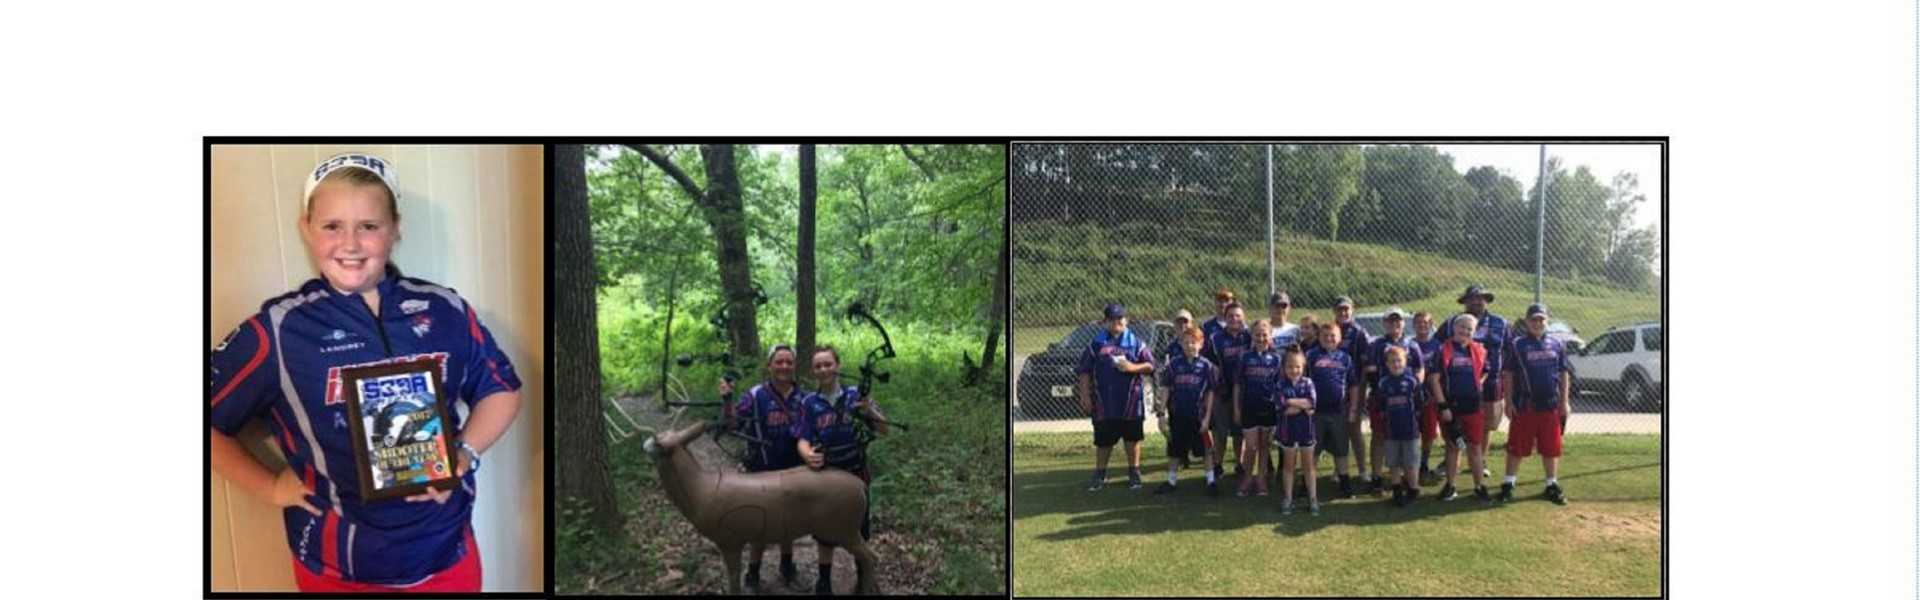 Whitley County students participate in archery tournament.